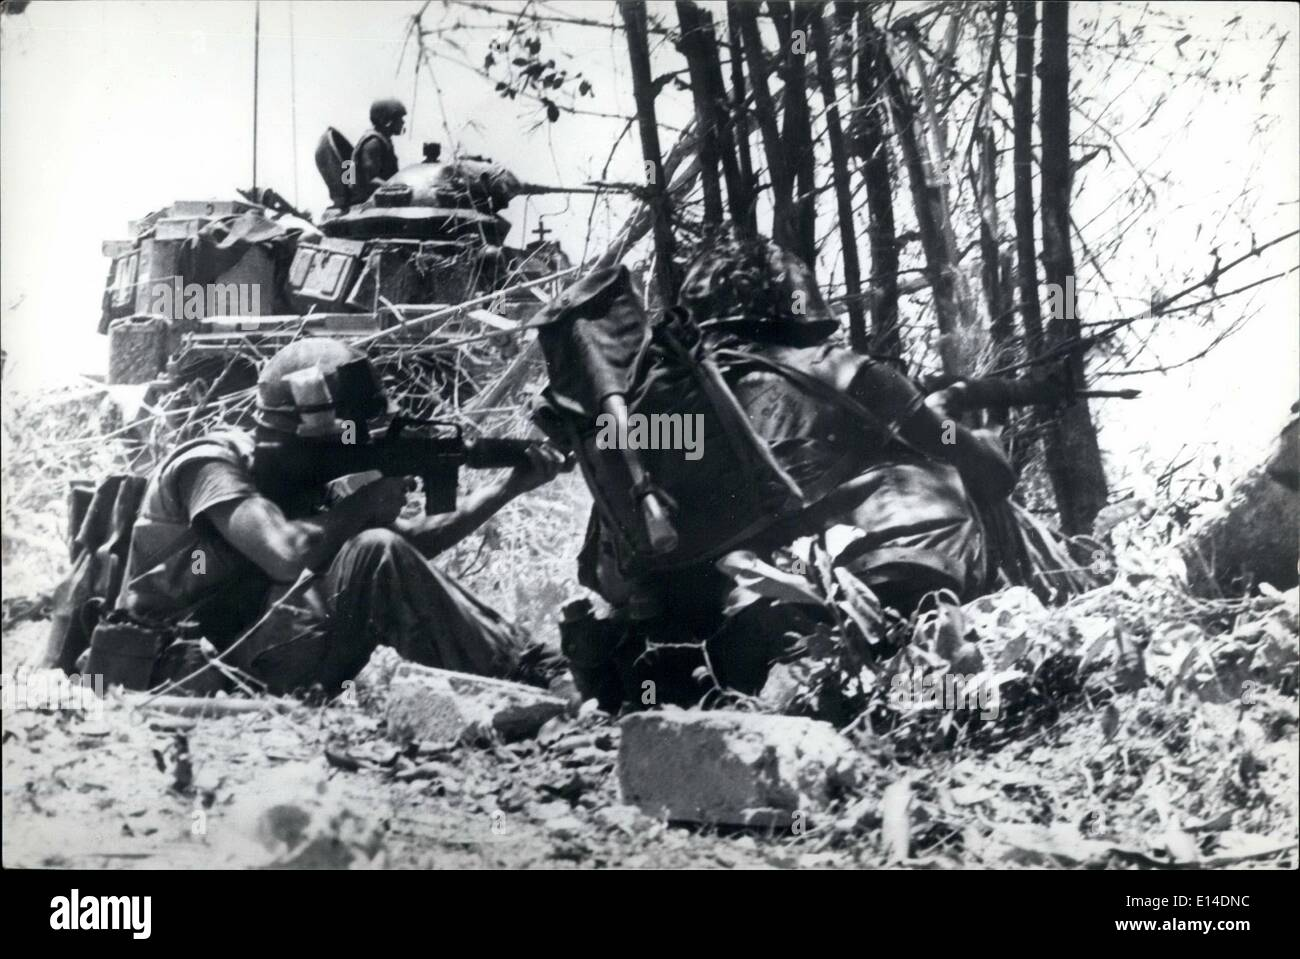 Apr. 18, 2012 - Help from big brother: A US tank gives supporting fire to marine riflemen trying to dislodge North Vietnamese troops well dug in north of Dong Ha. - Stock Image